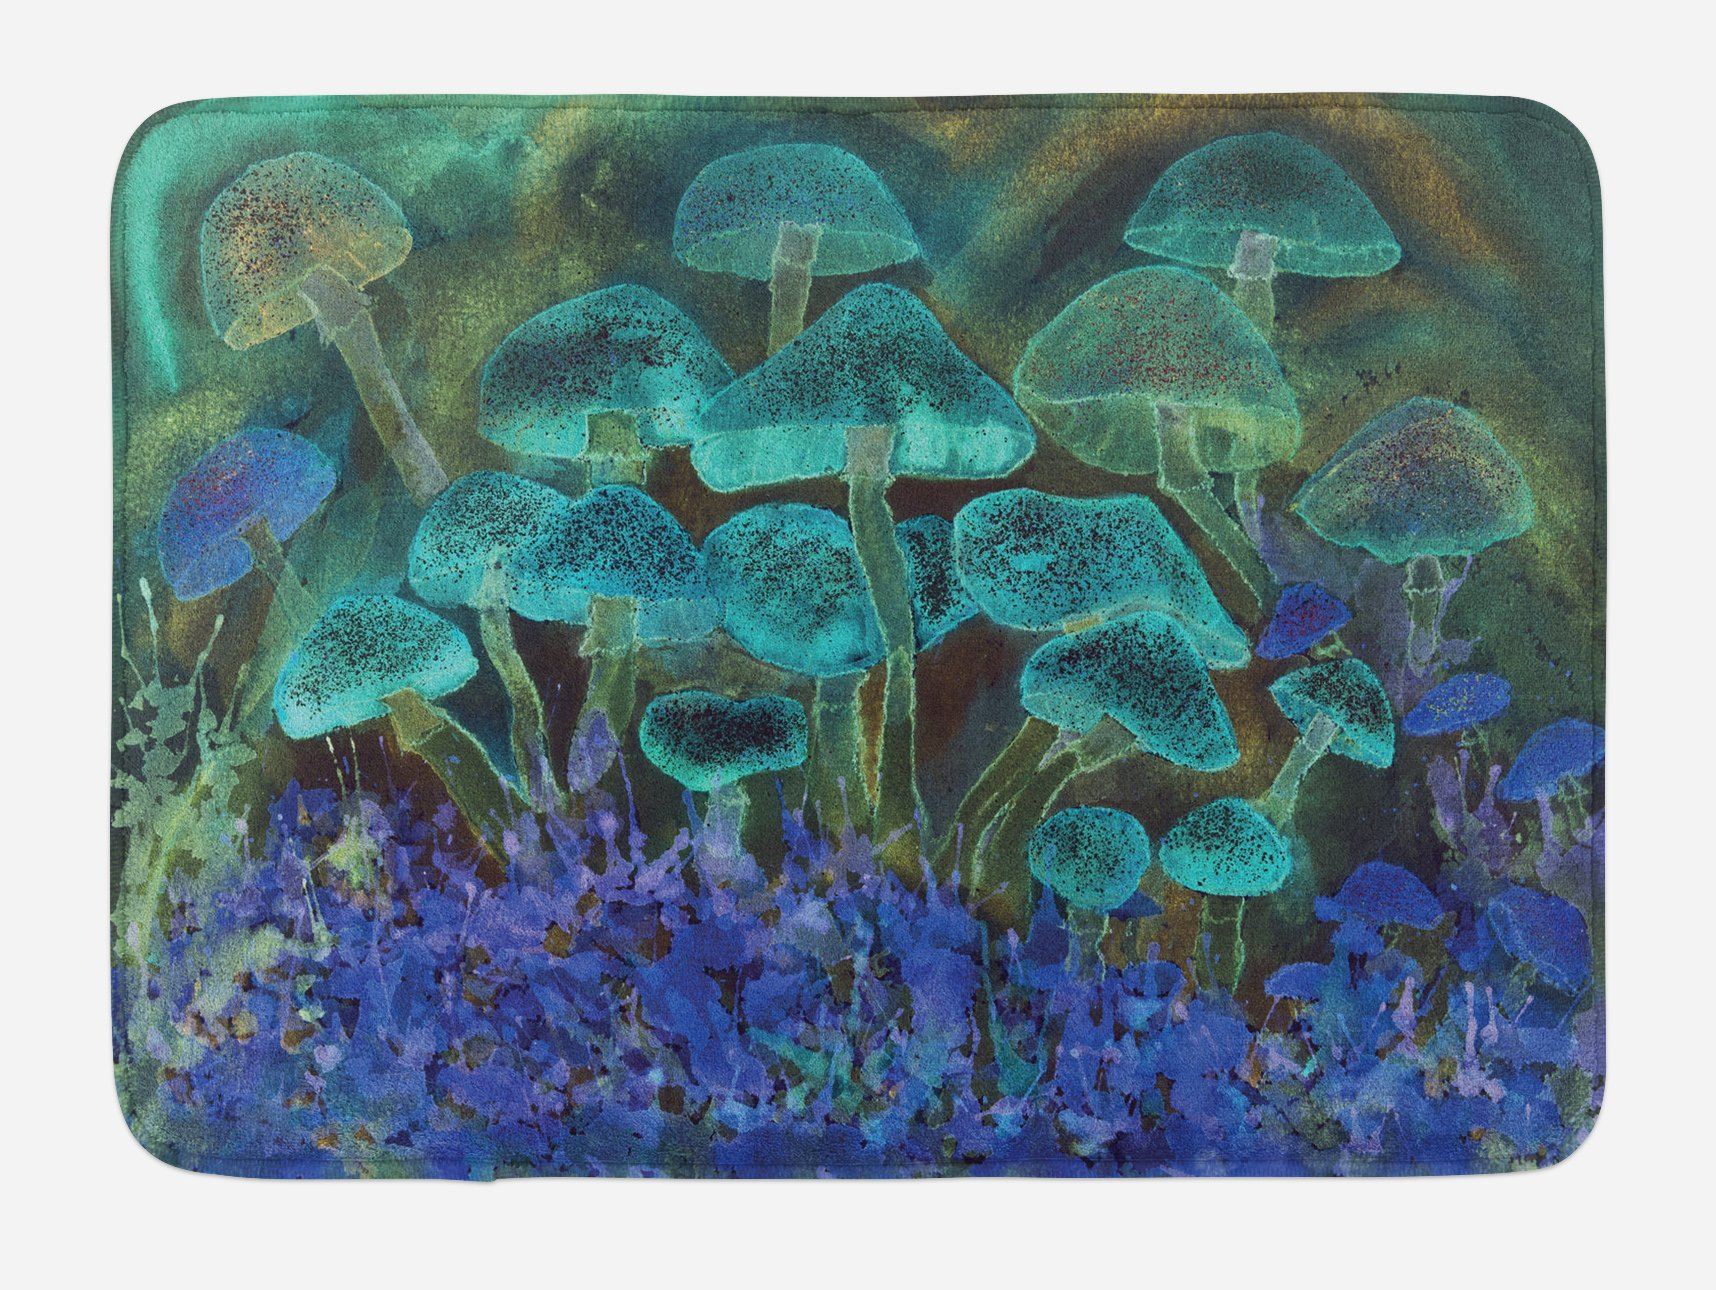 Ambesonne Psychedelic Bath Mat, Unusual Speckled Fluorescent Mushroom Figures Dreamy Fantasy Graphic, Plush Bathroom Decor Mat with Non Slip Backing, 29.5 W X 17.5 W Inches, Slate Blue Violet